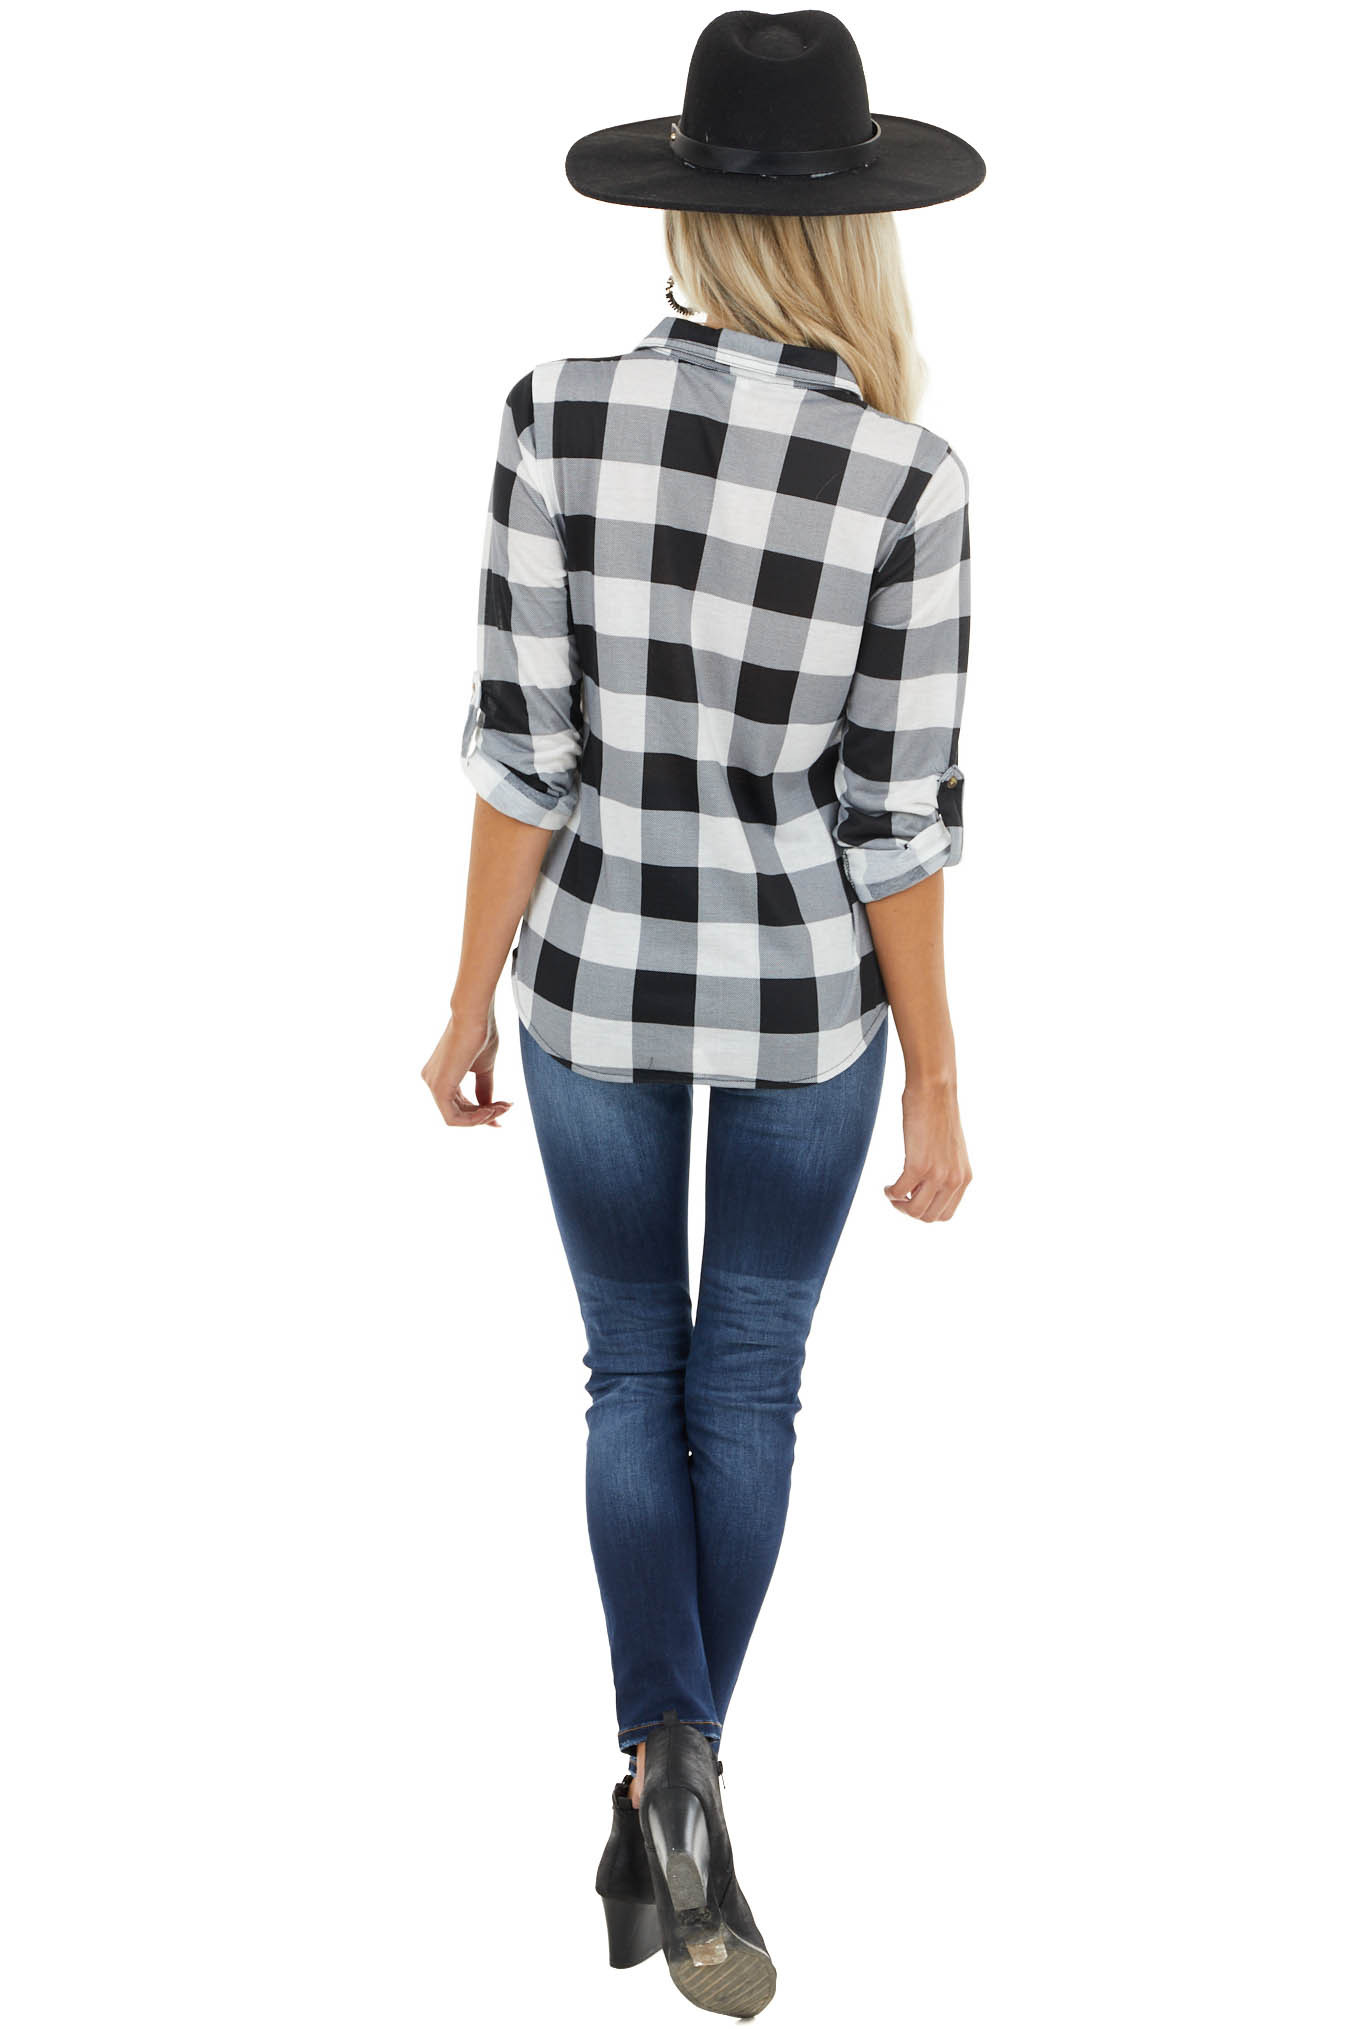 Black Buffalo Plaid Button Closure Top with Chest Pockets